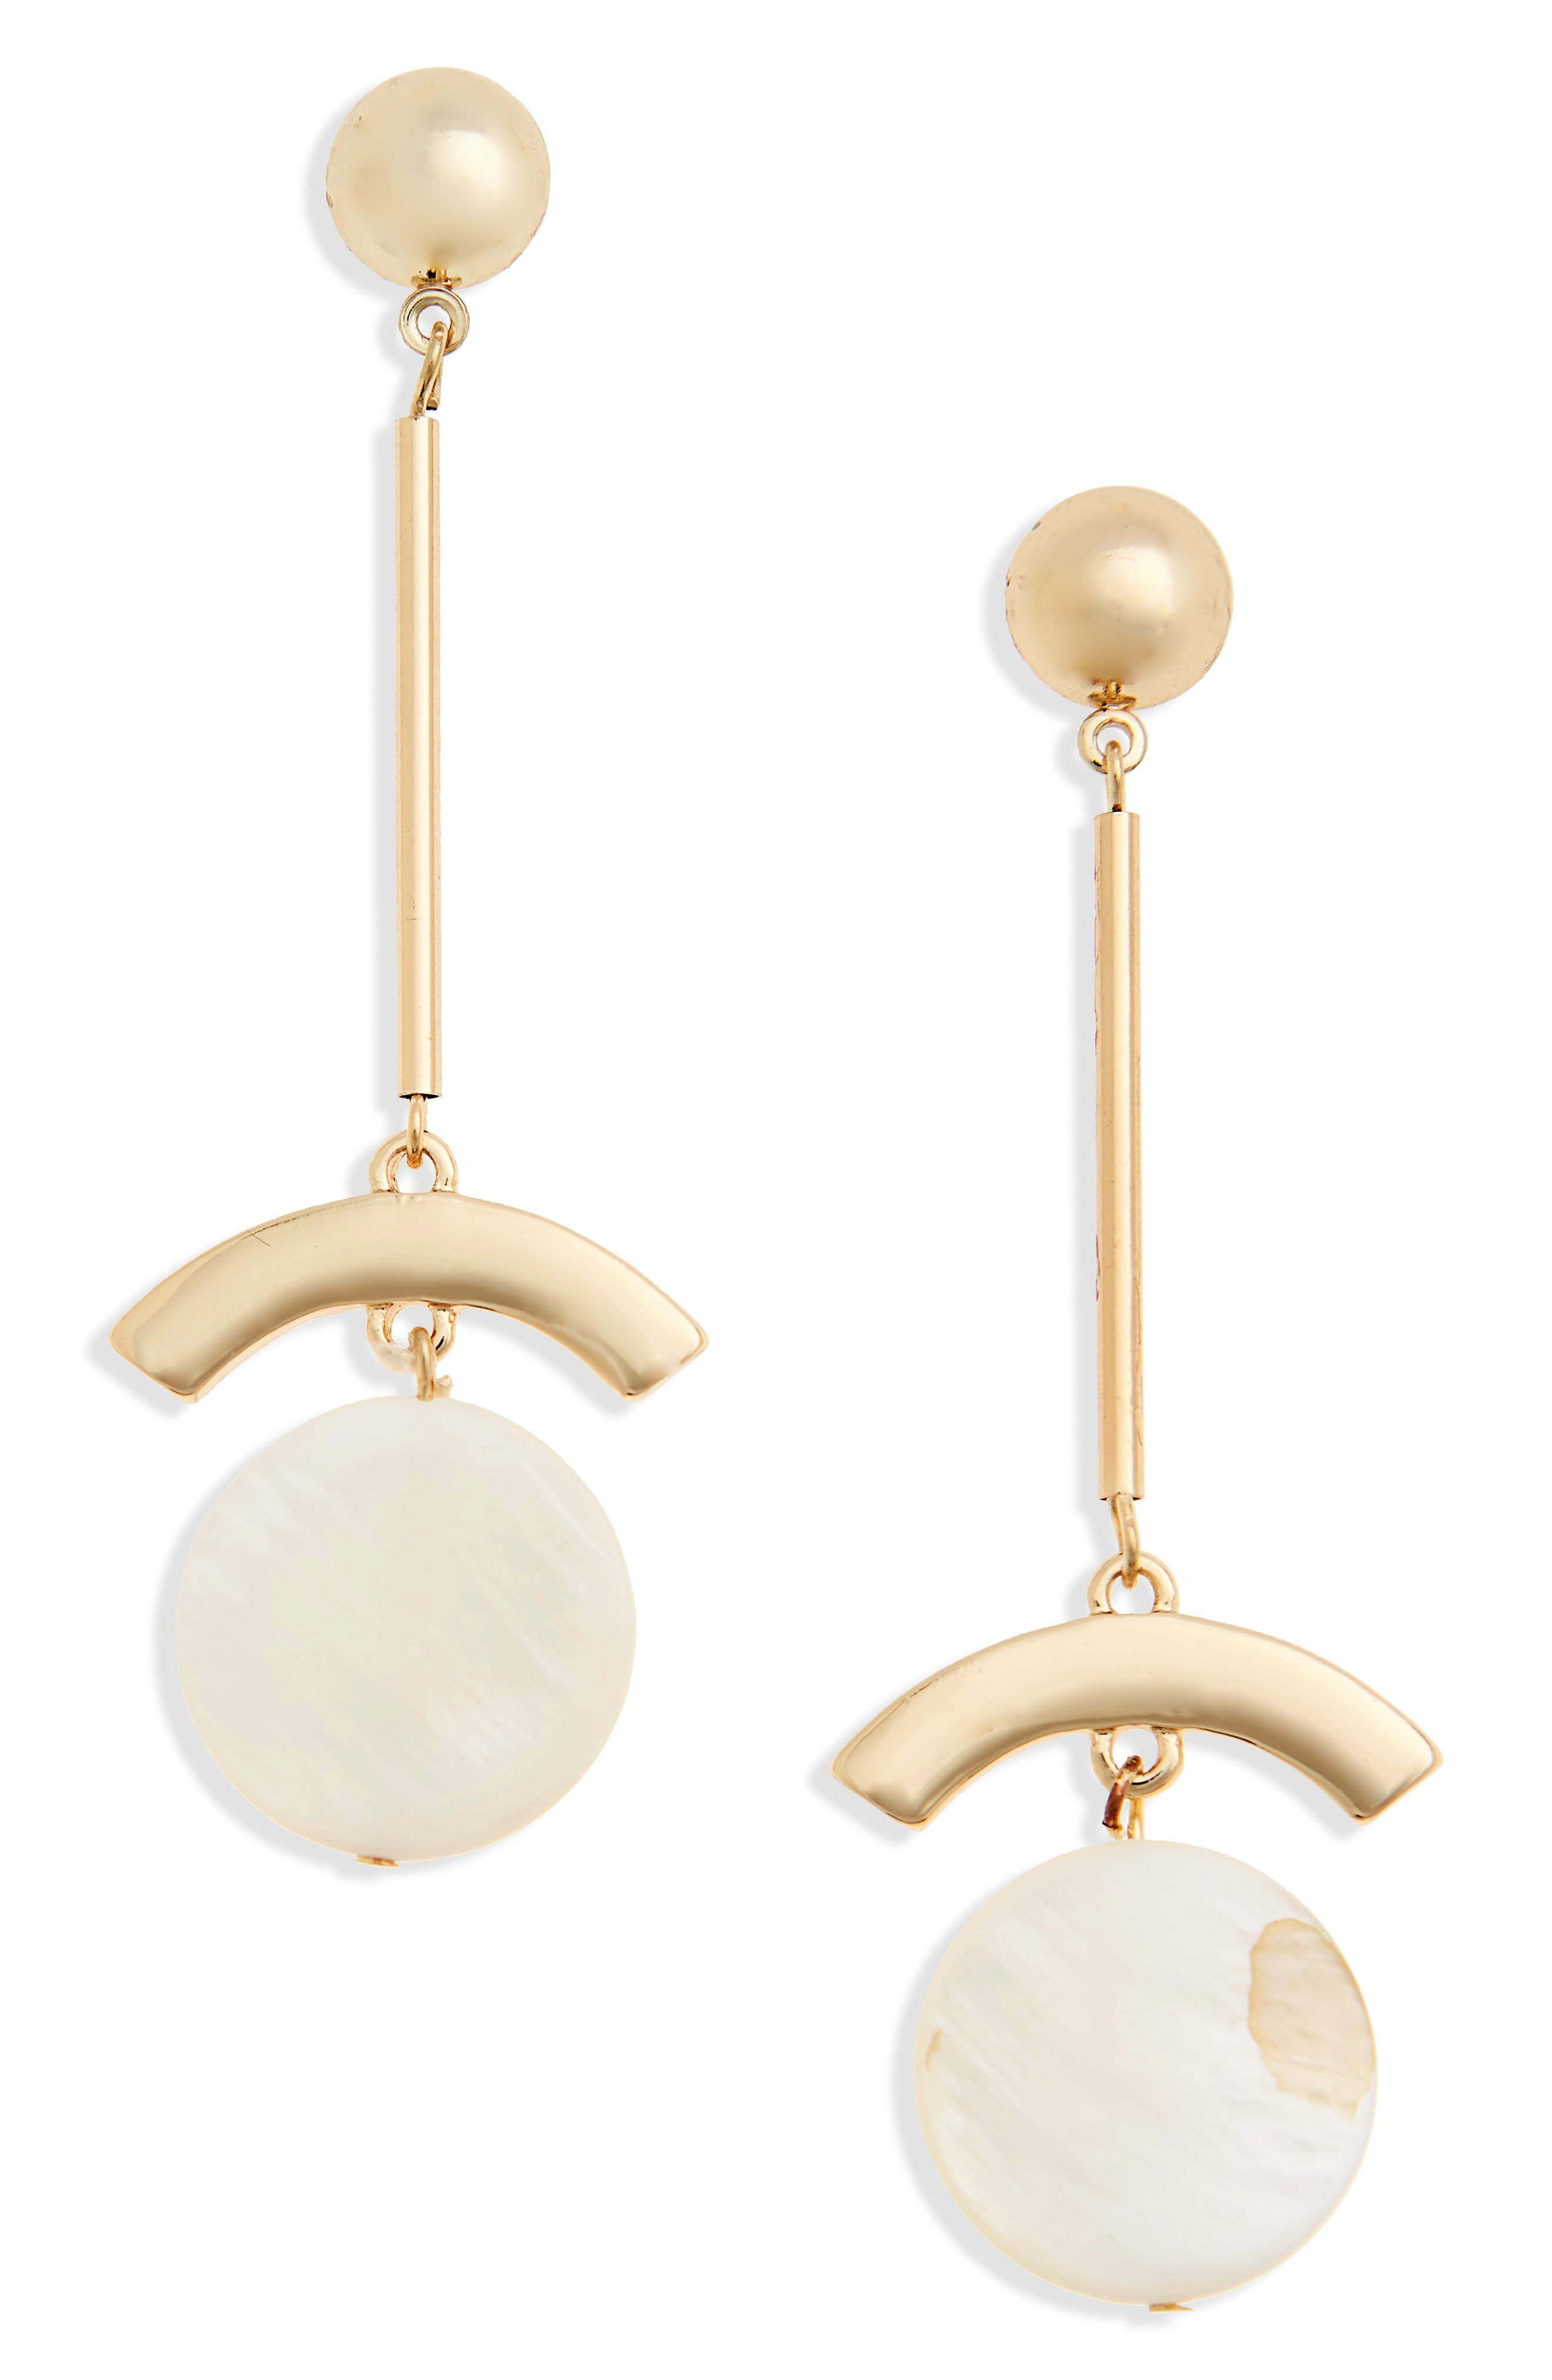 Mother of Pearl Drop Earrings,                         Main,                         color, Gold/ White